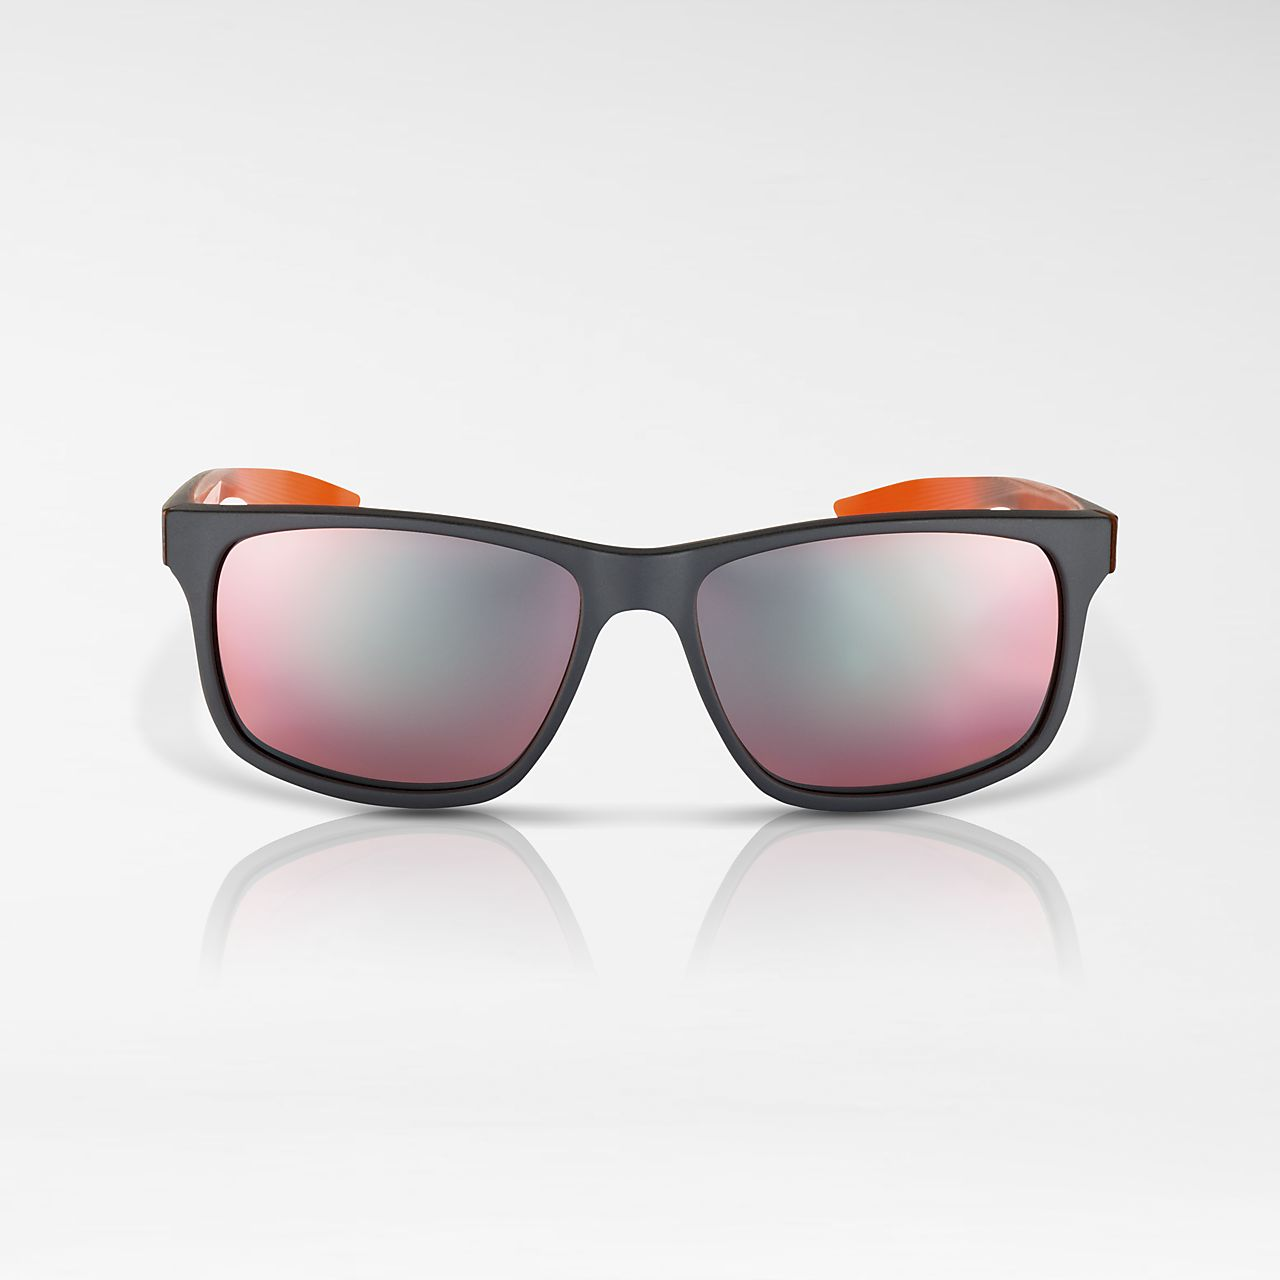 Nike Lunettes de soleil Essential Chaser Mirrored yahxkCPbm